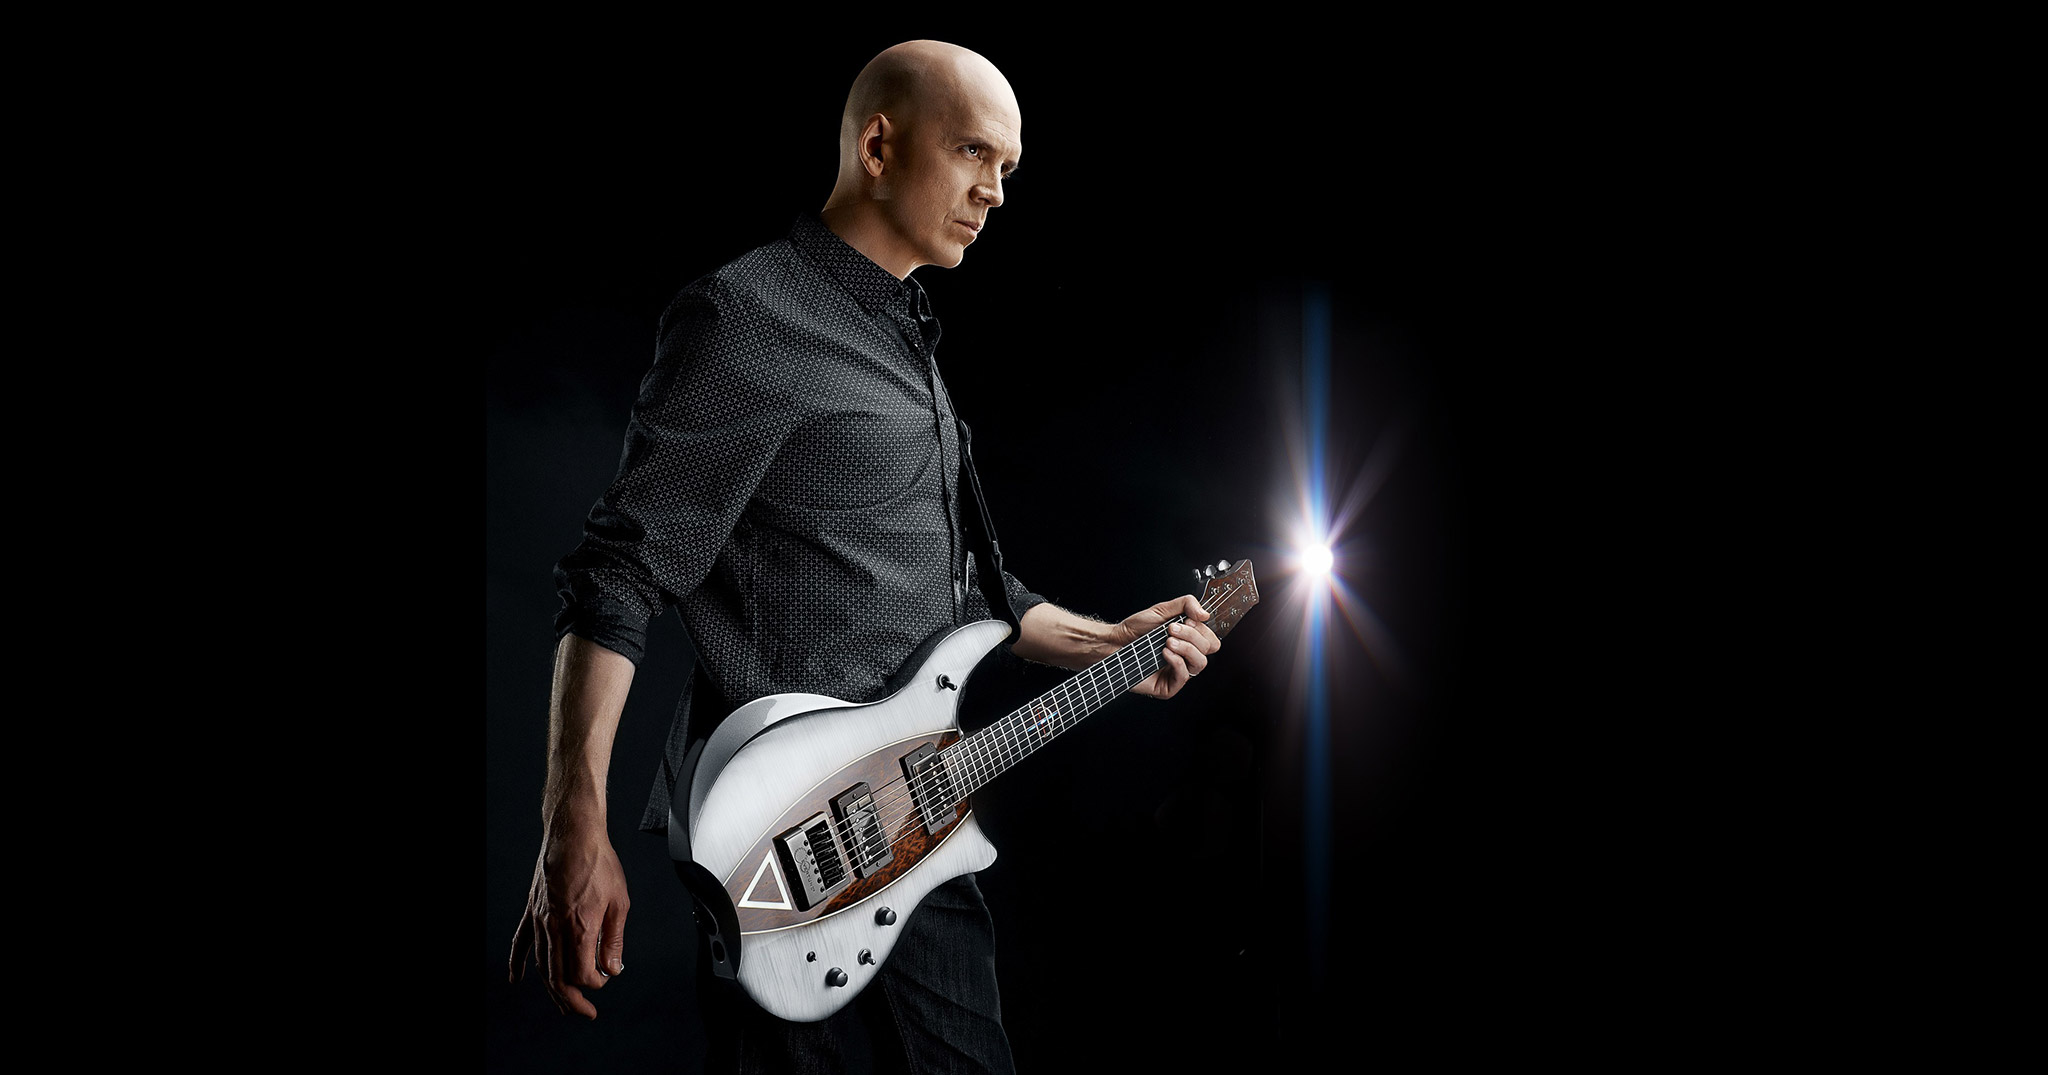 Devin Townsend Promotional Image